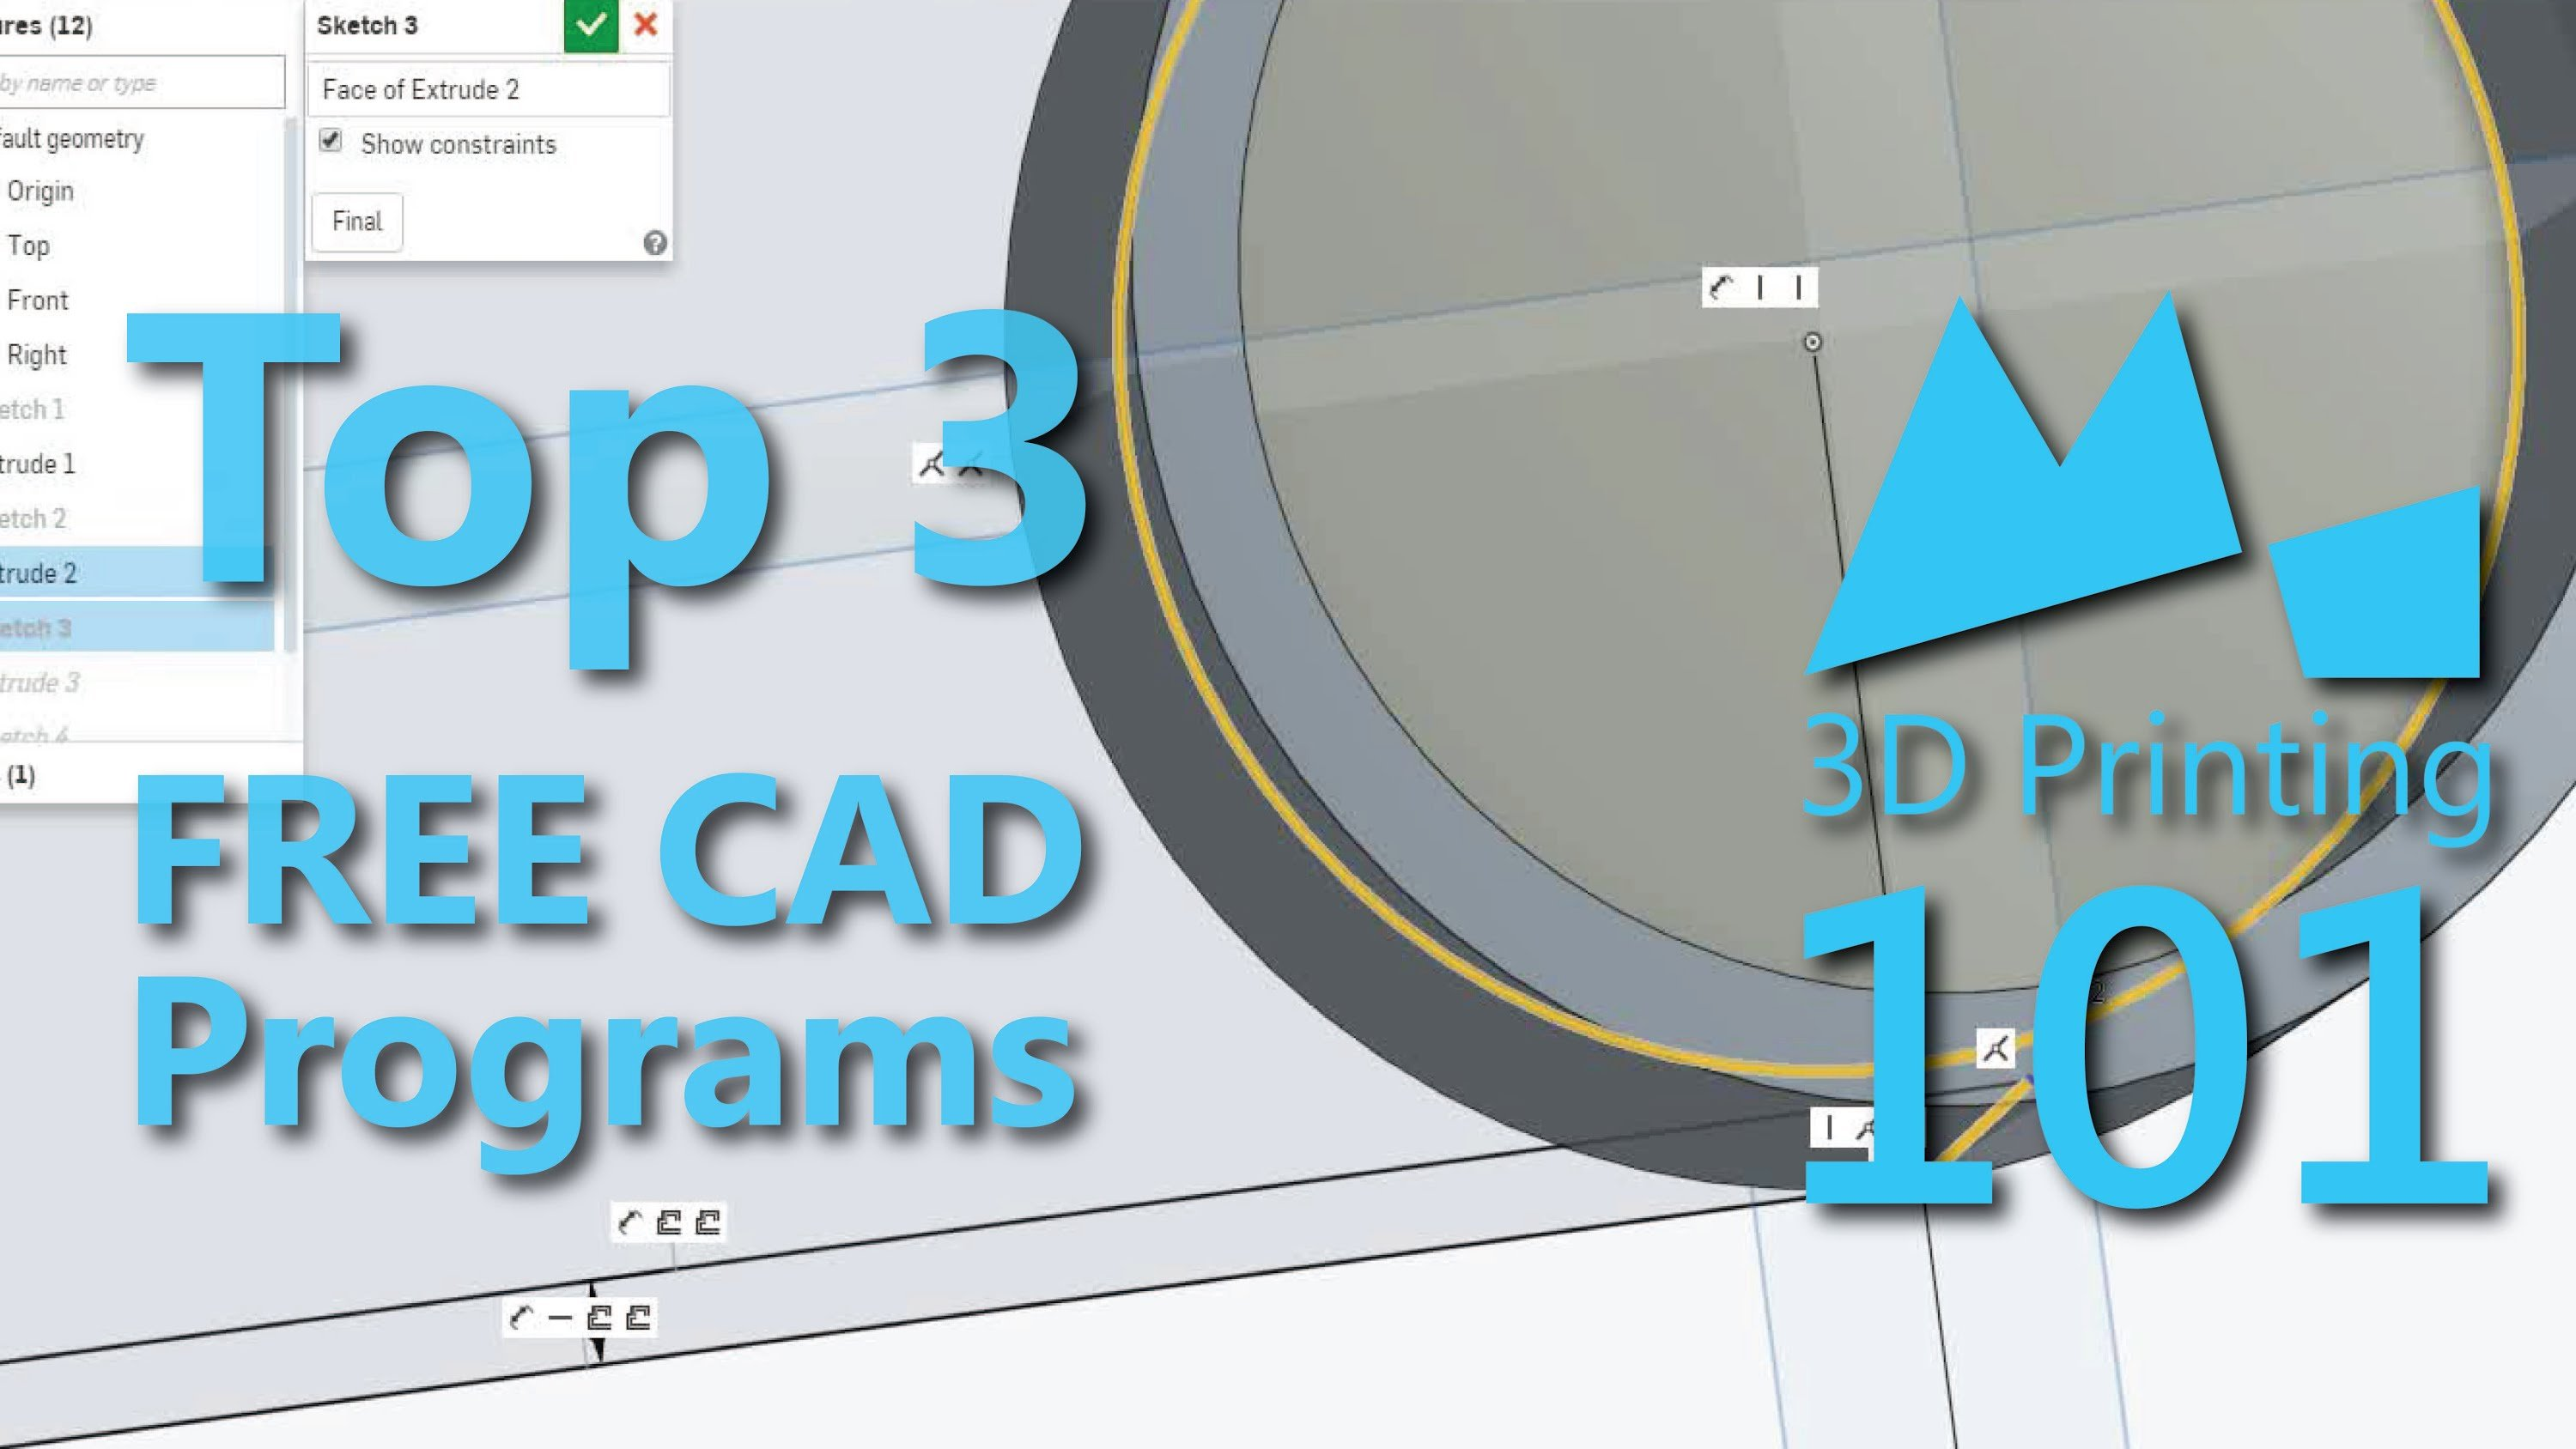 Top 3 free cad for 3dprinting adafruit industries 3d printer design software